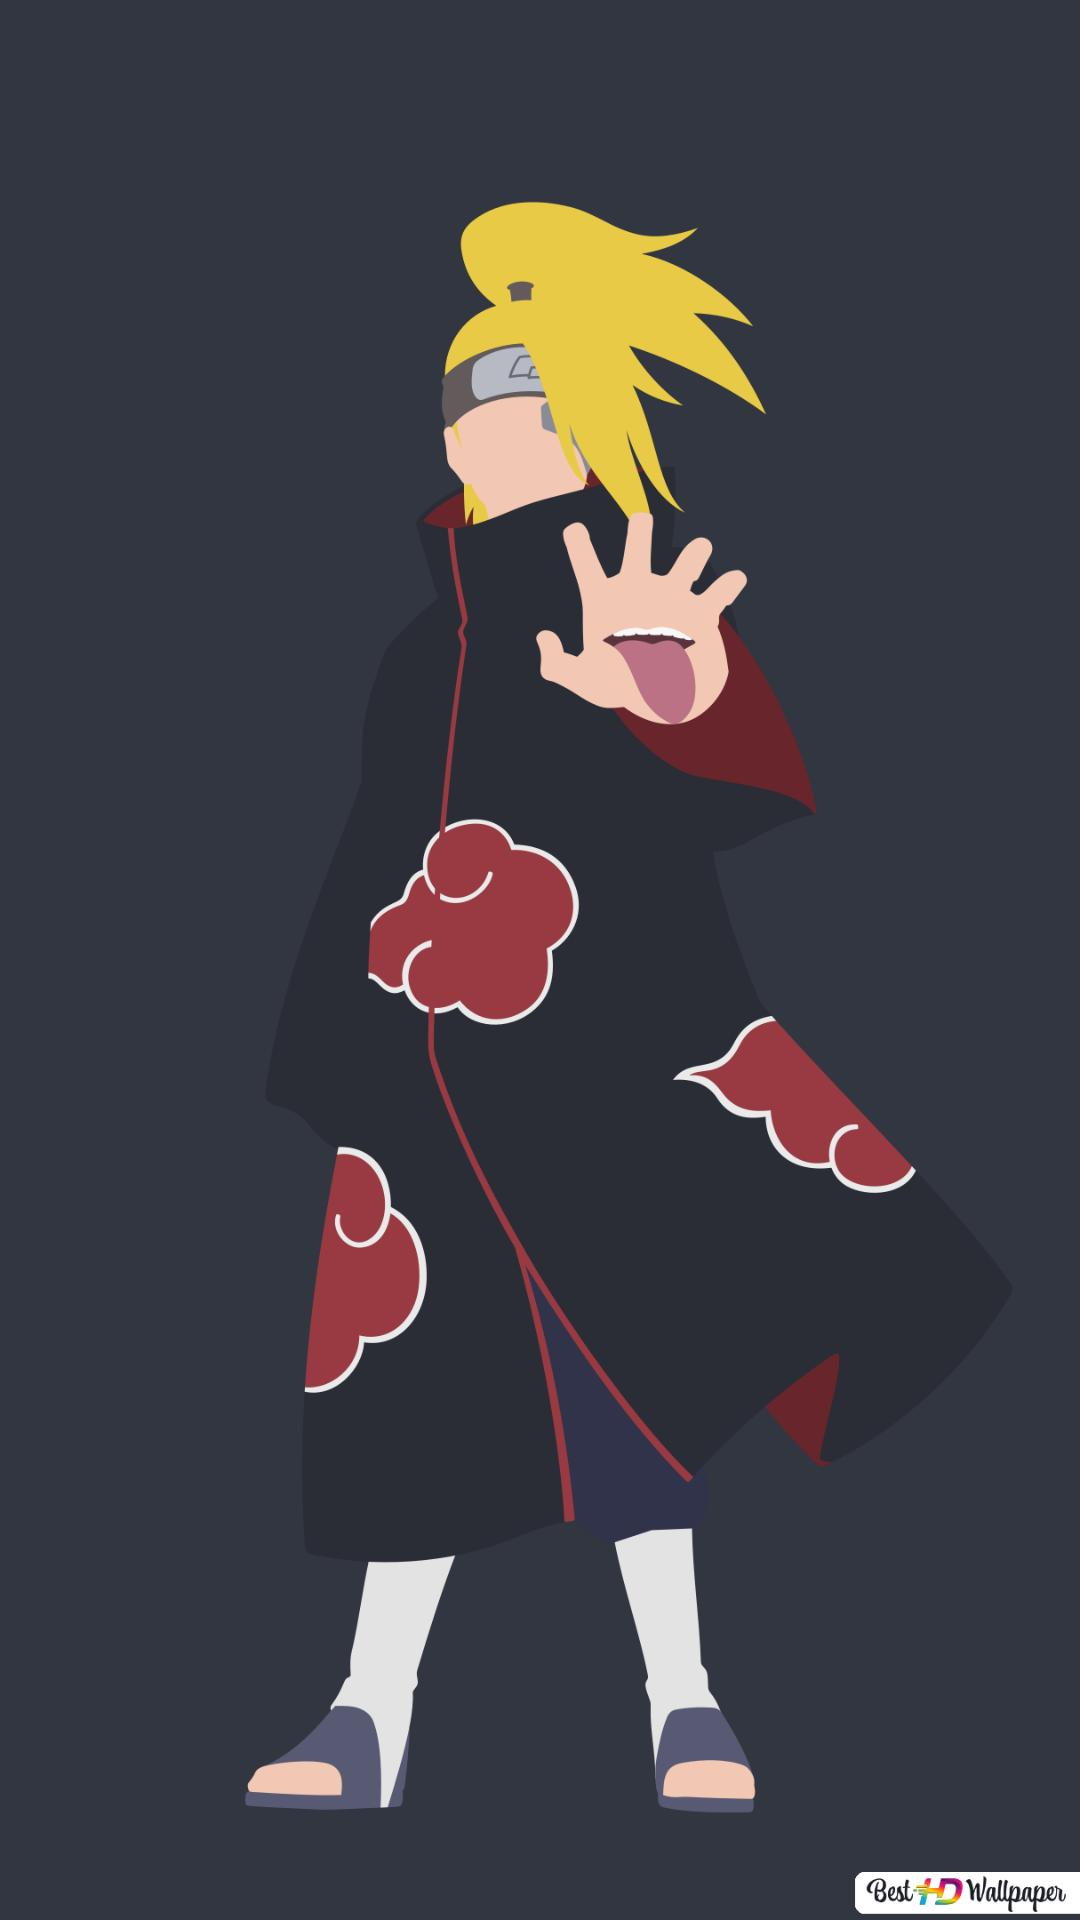 Image Wallpaper Naruto Naruto Wallpaper Download